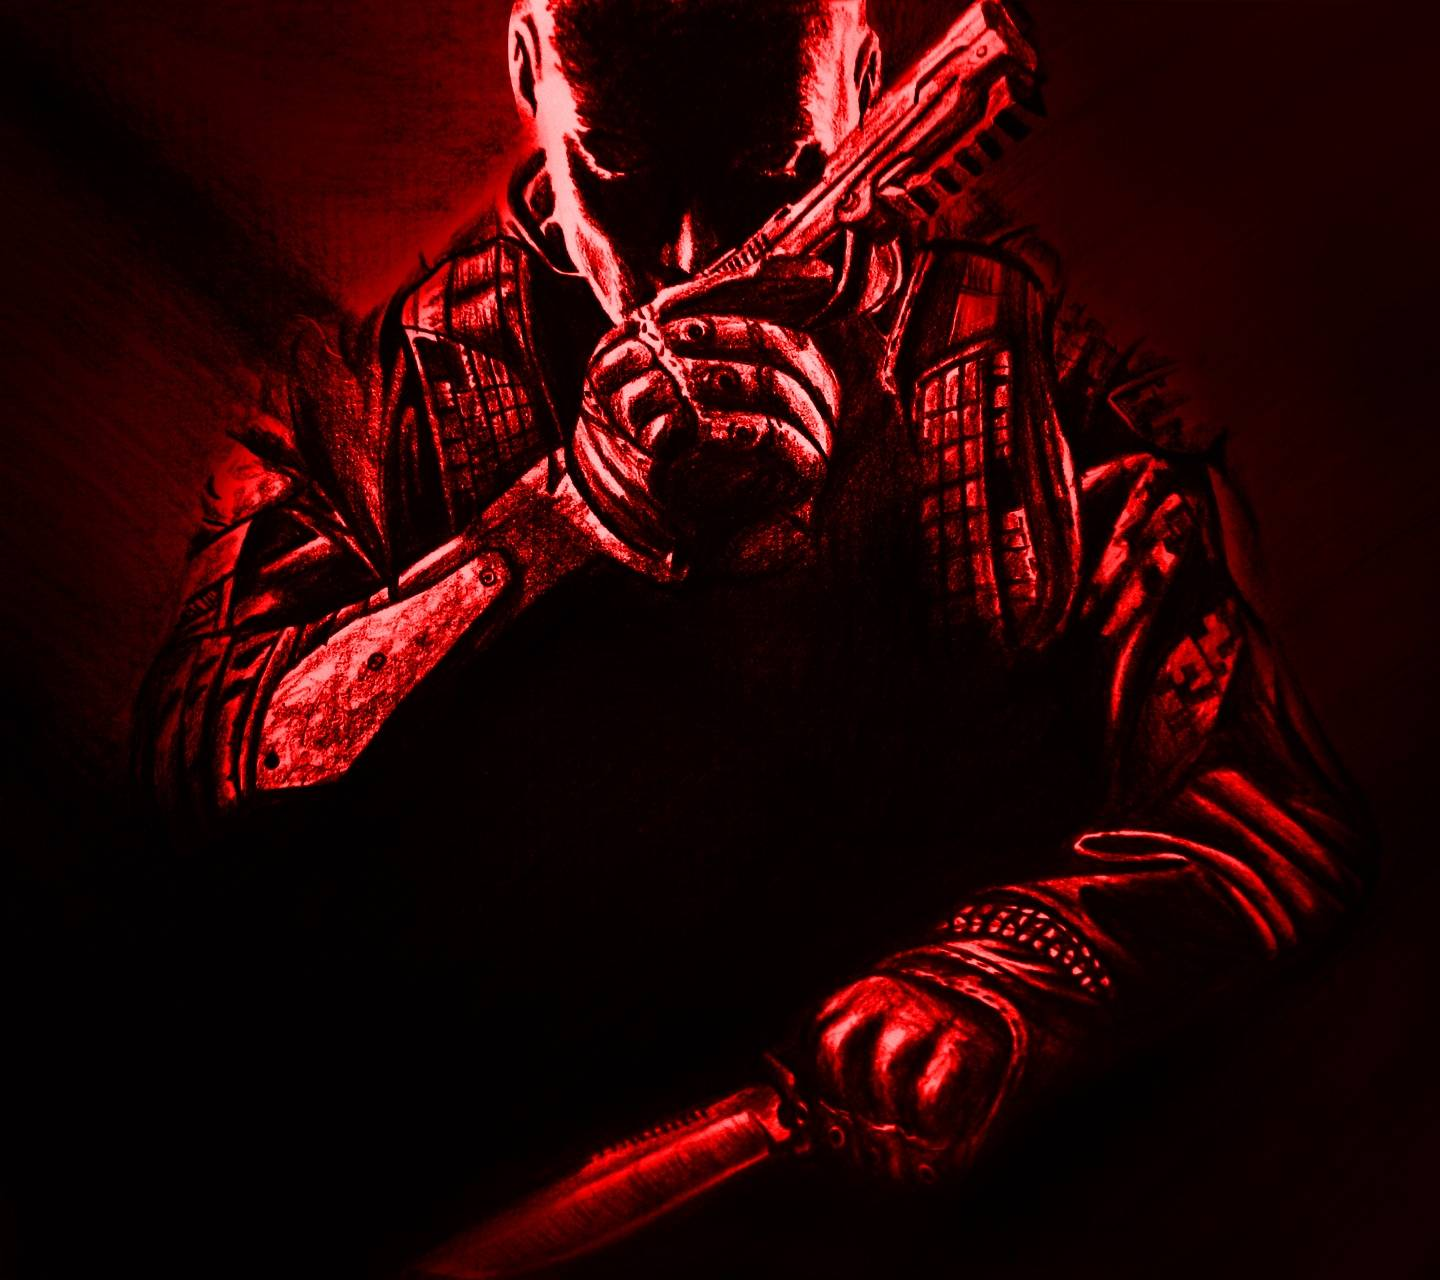 Hd Black Ops 2 Wallpaper By Julianna 2c Free On Zedge